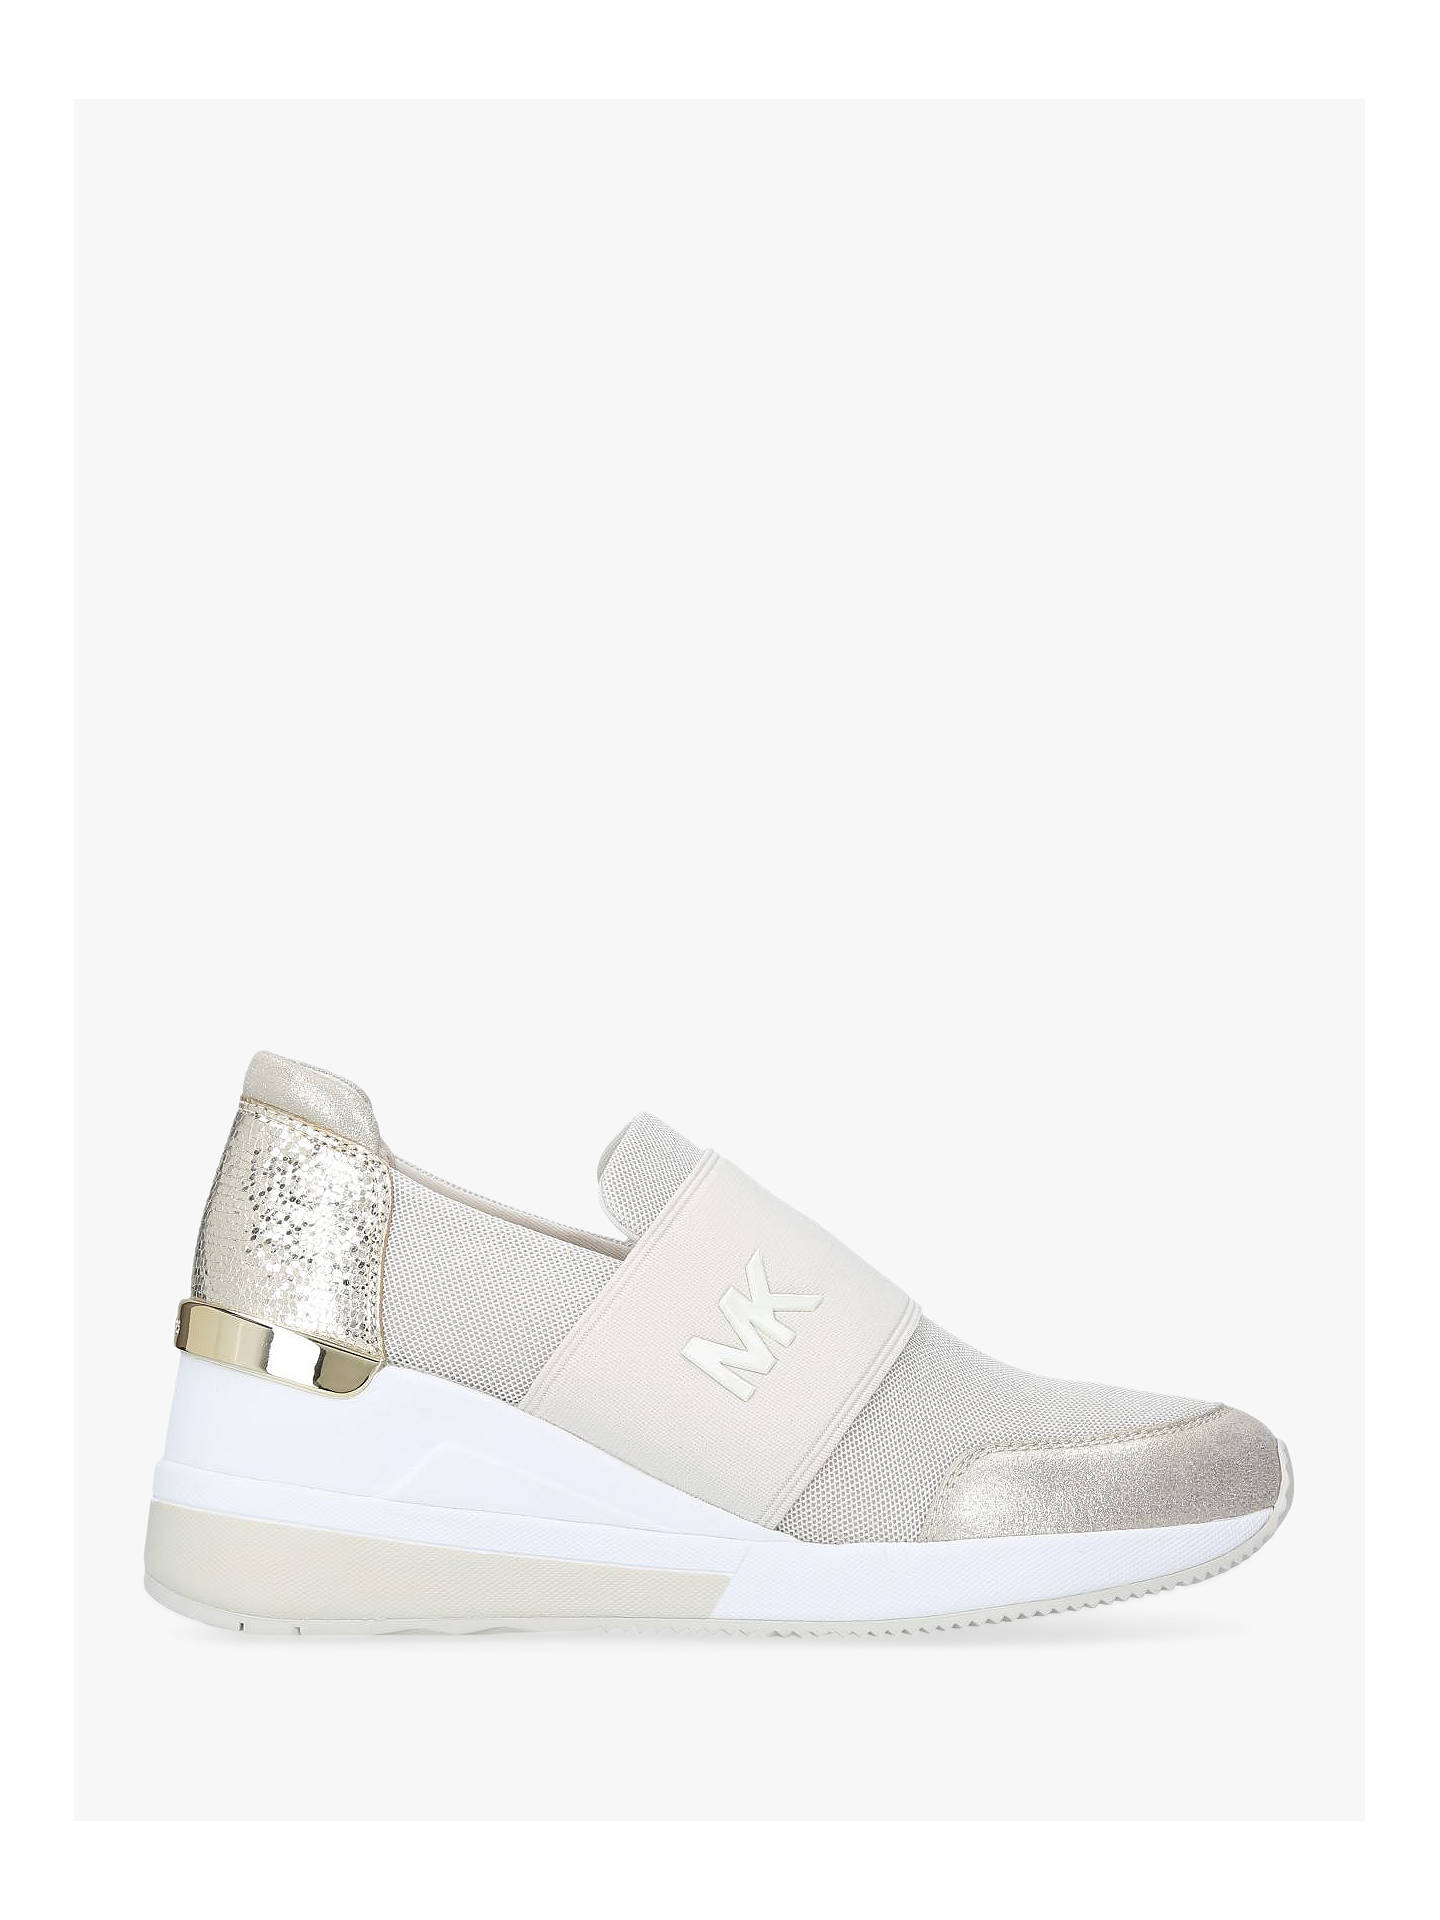 Michael Michael Kors Felix Trainers At John Lewis Partners